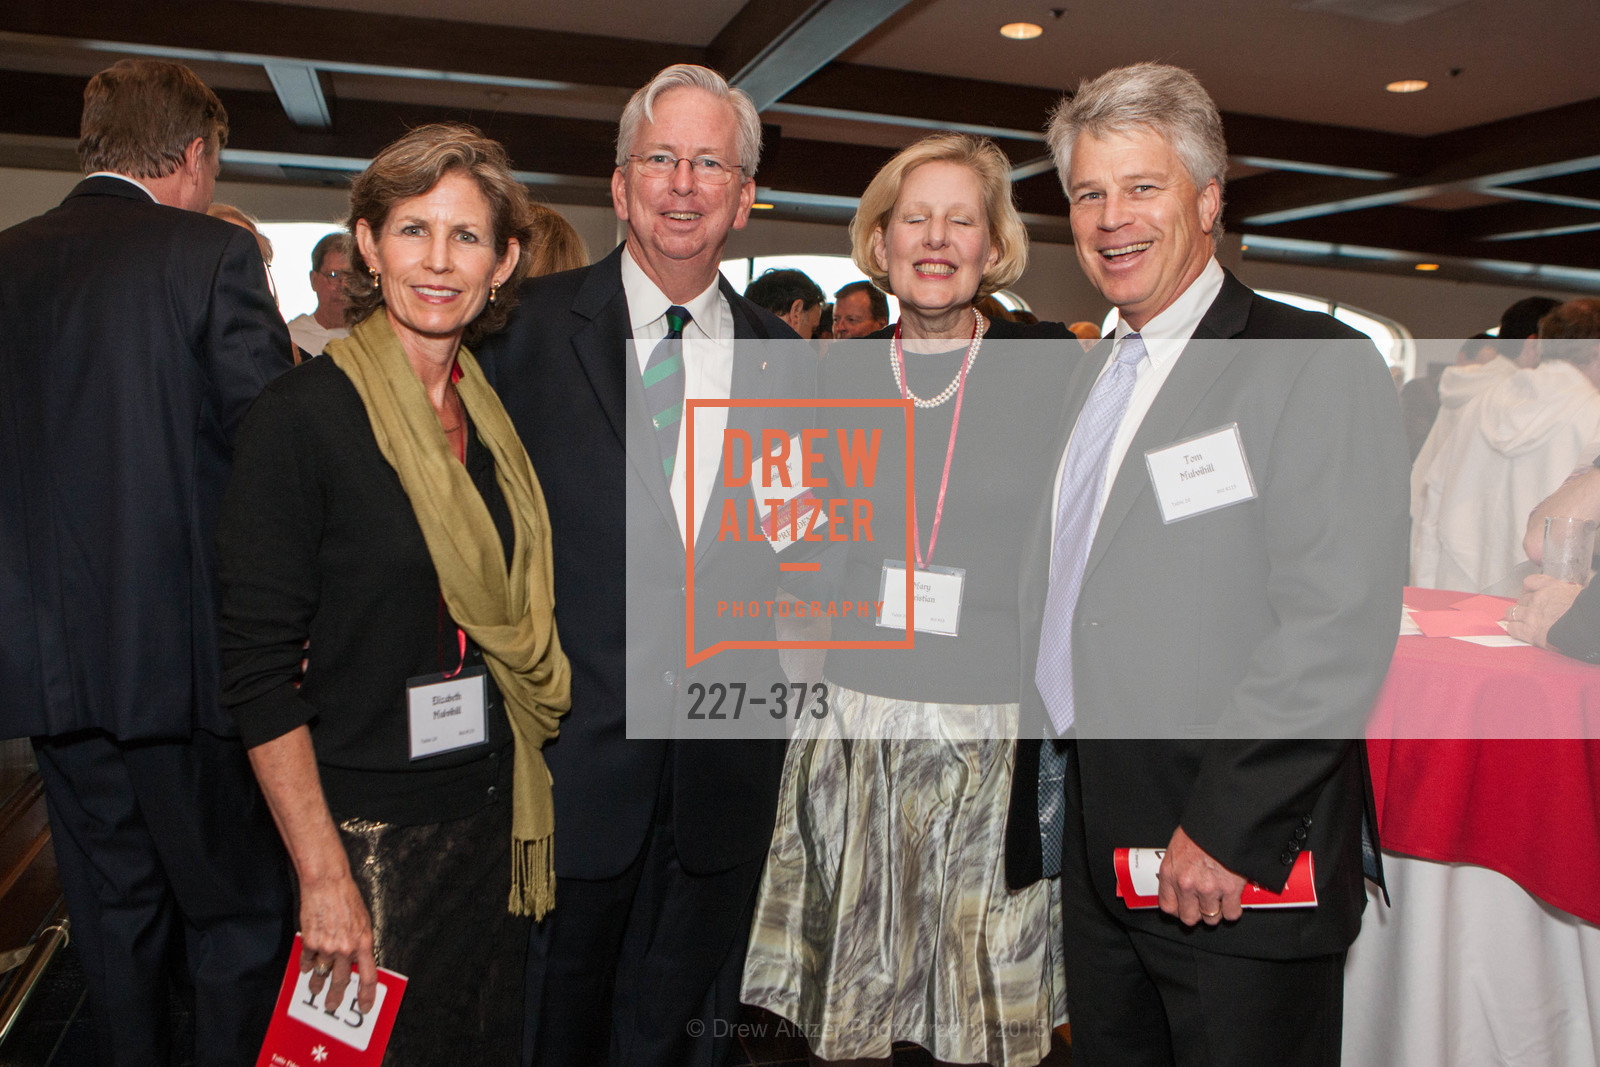 Elizabeth Mulvihill, John Christian, Mary Christian, Tom Mulvihill, Sovereign Order of Malta Presents: A Knight for Champions, 7th Annual Silver Chalice Awards Dinner, St. Francis Yacht Club. 99 Yacht Rd, October 13th, 2015,Drew Altizer, Drew Altizer Photography, full-service agency, private events, San Francisco photographer, photographer california